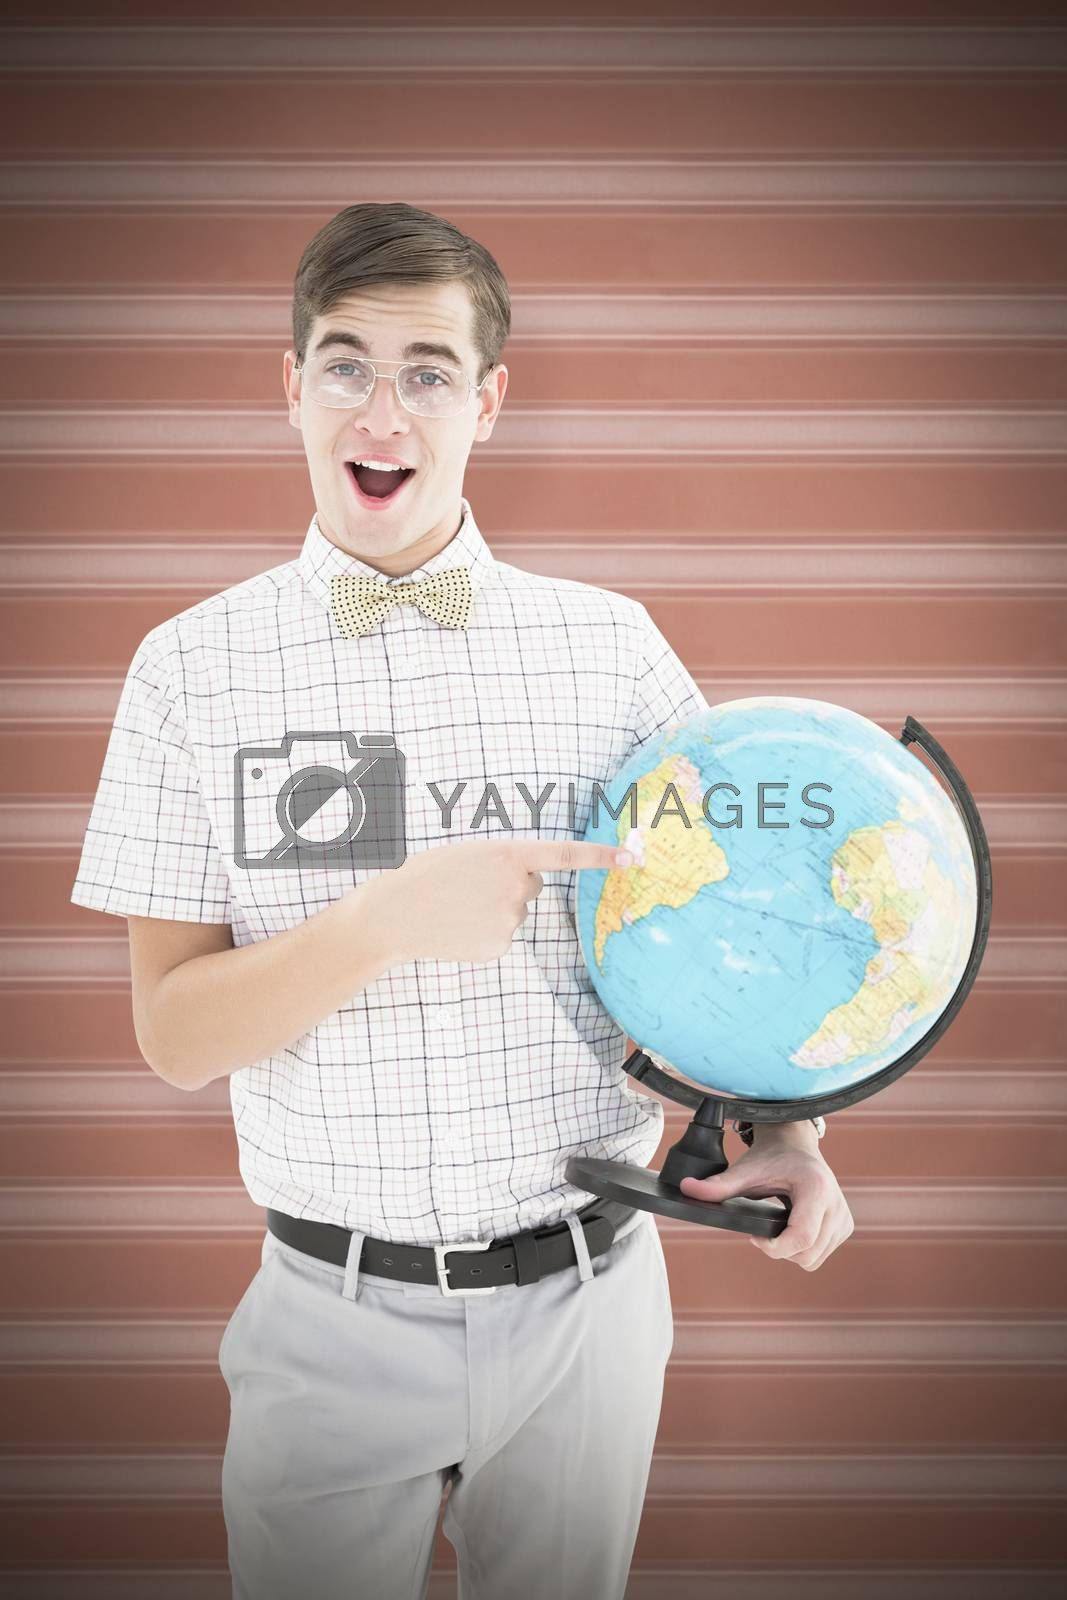 Geeky hipster holding a globe smiling at camera against background